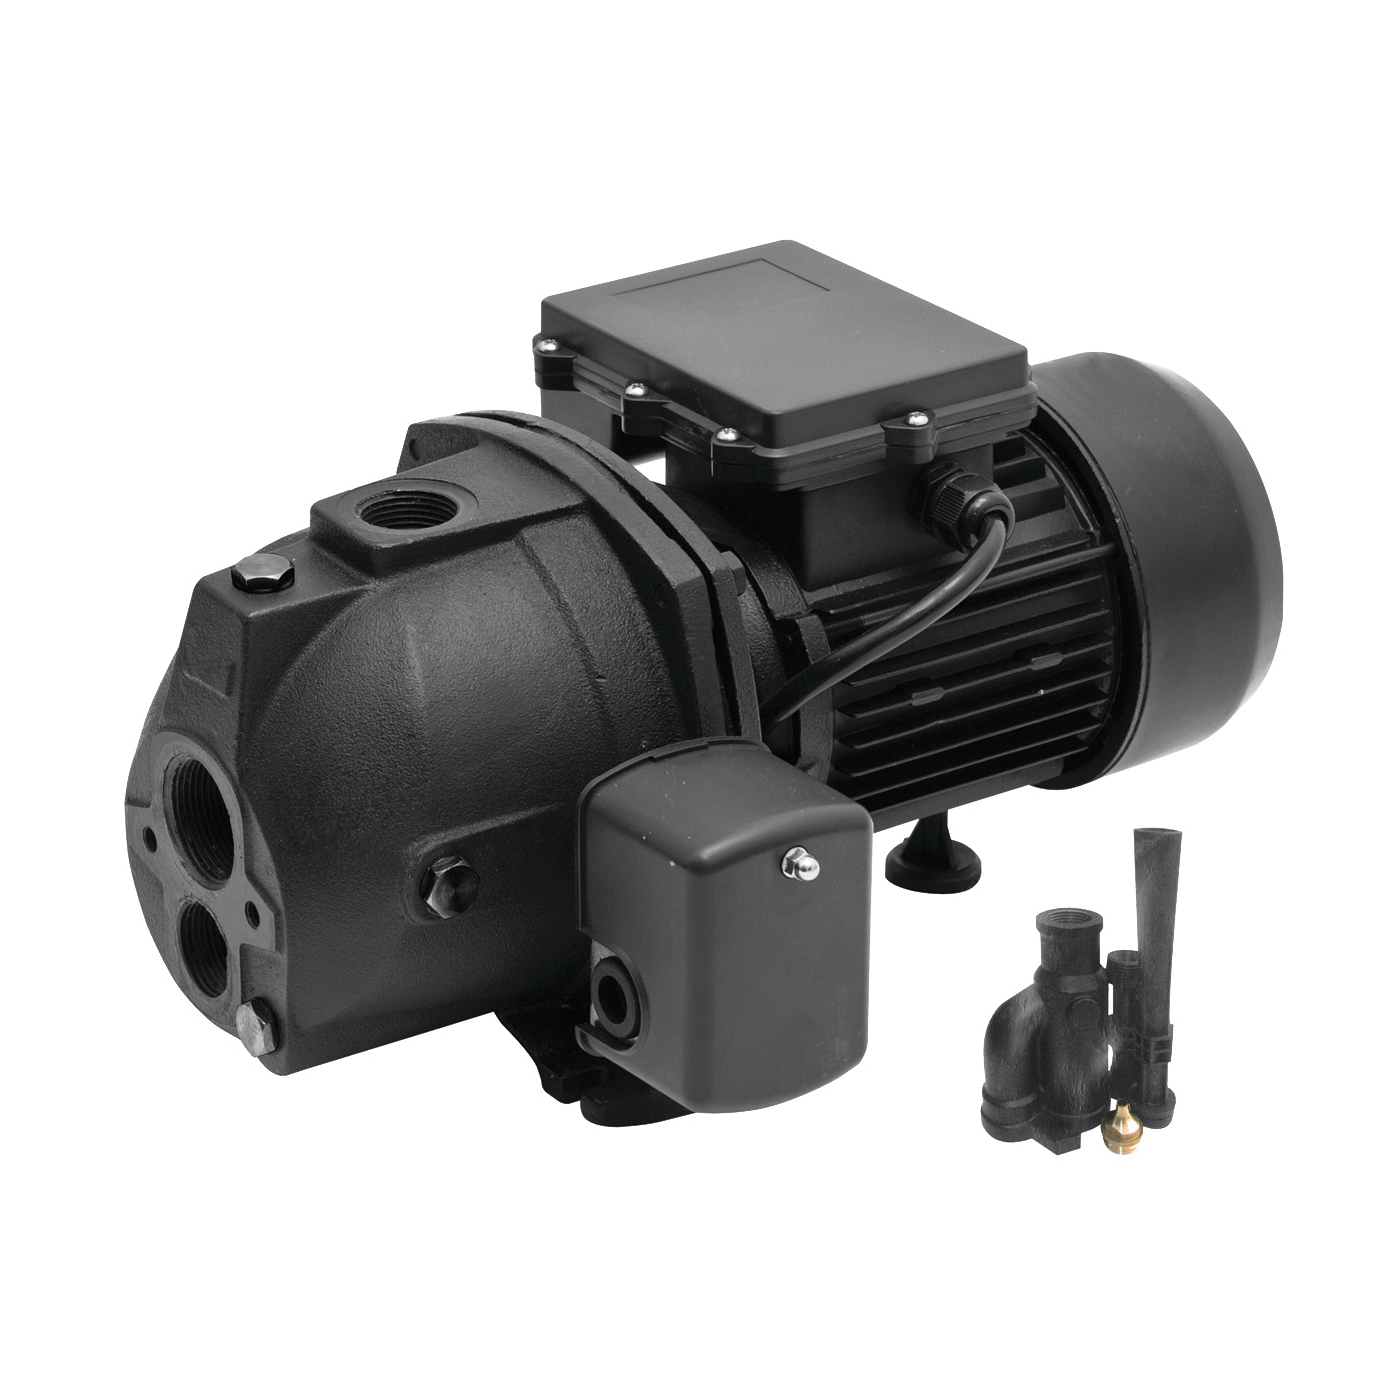 Picture of SUPERIOR PUMP 94515 Jet Pump, 6.4/3.2 A, 115/230 V, 0.5 hp, 1-1/4 in Suction, 1 in Discharge Connection, 9.9 gpm